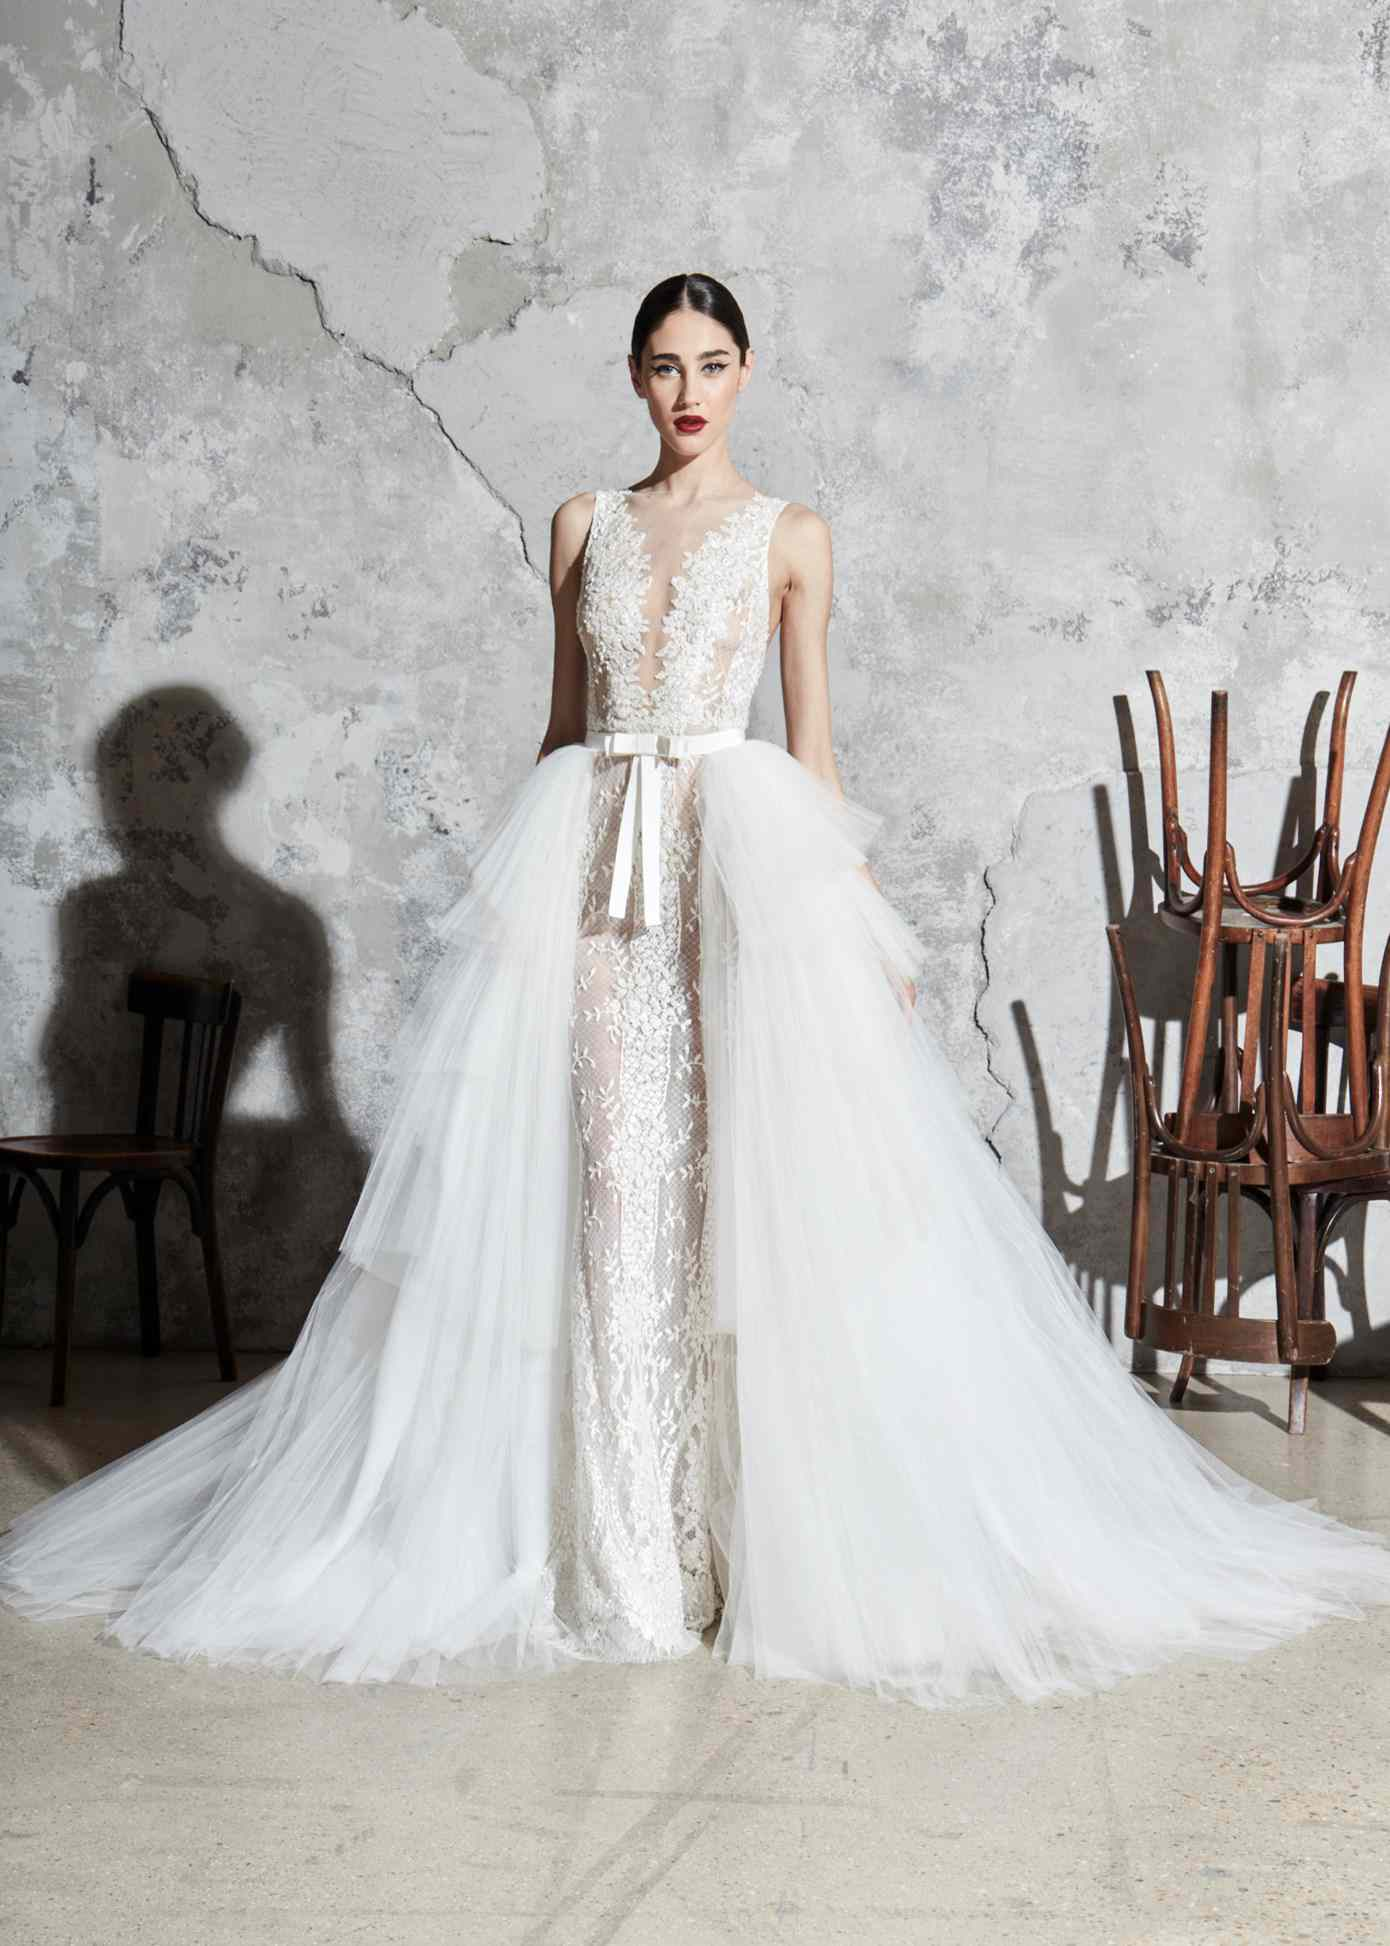 Model in a floral-embroidered sheath gown with an illusion neckline, a white bow belt, and a tiered tulle overskirt